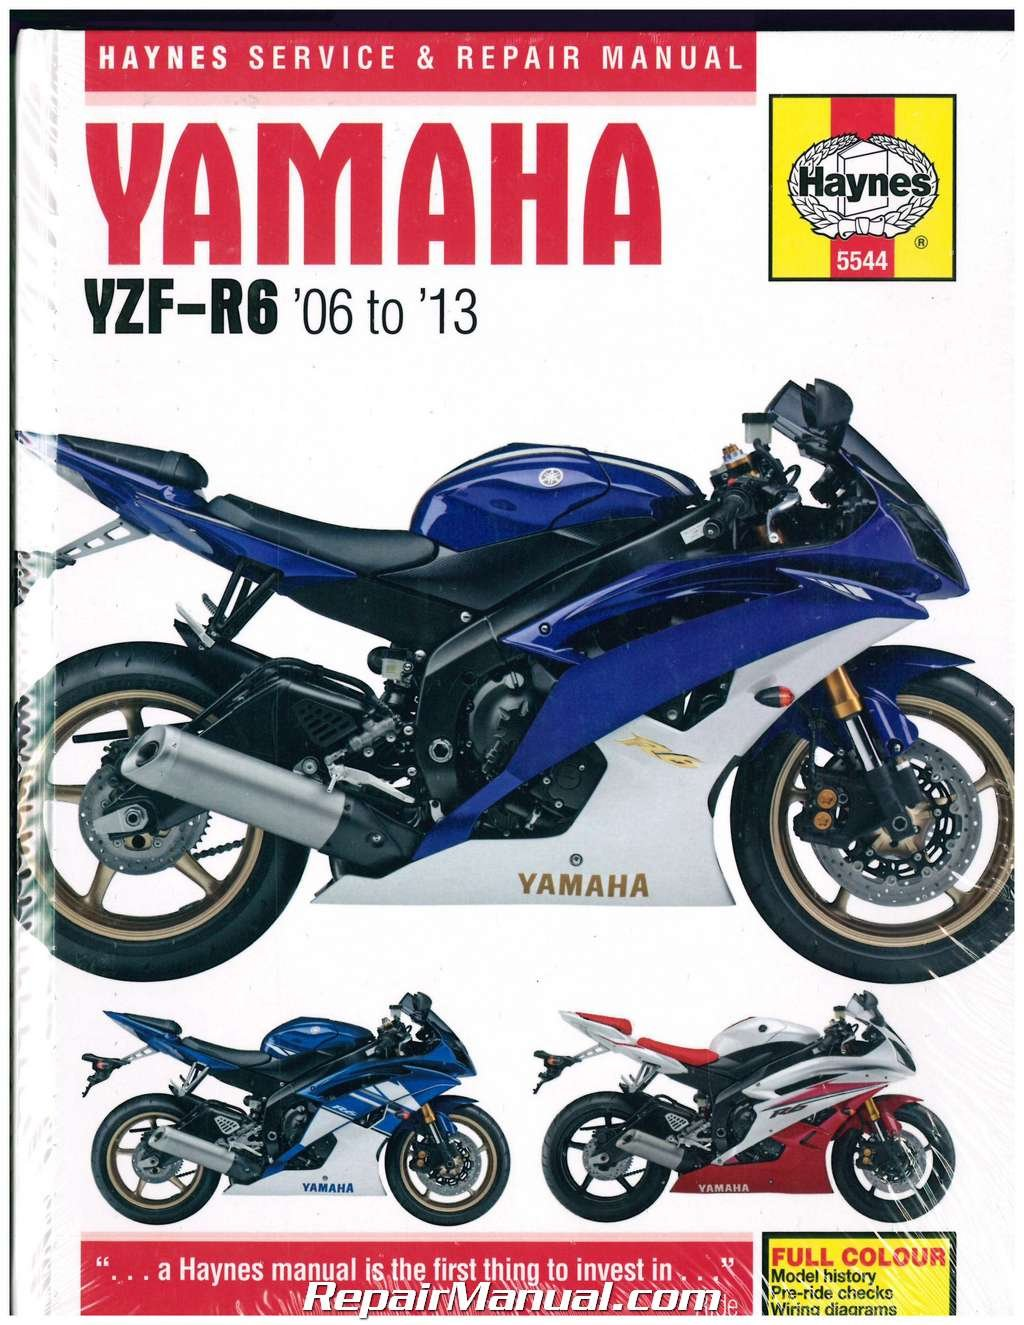 H5544 Yamaha YZF-R6 2006-2013 Haynes Motorcycle Repair Manual:  Manufacturer: Amazon.com: Books